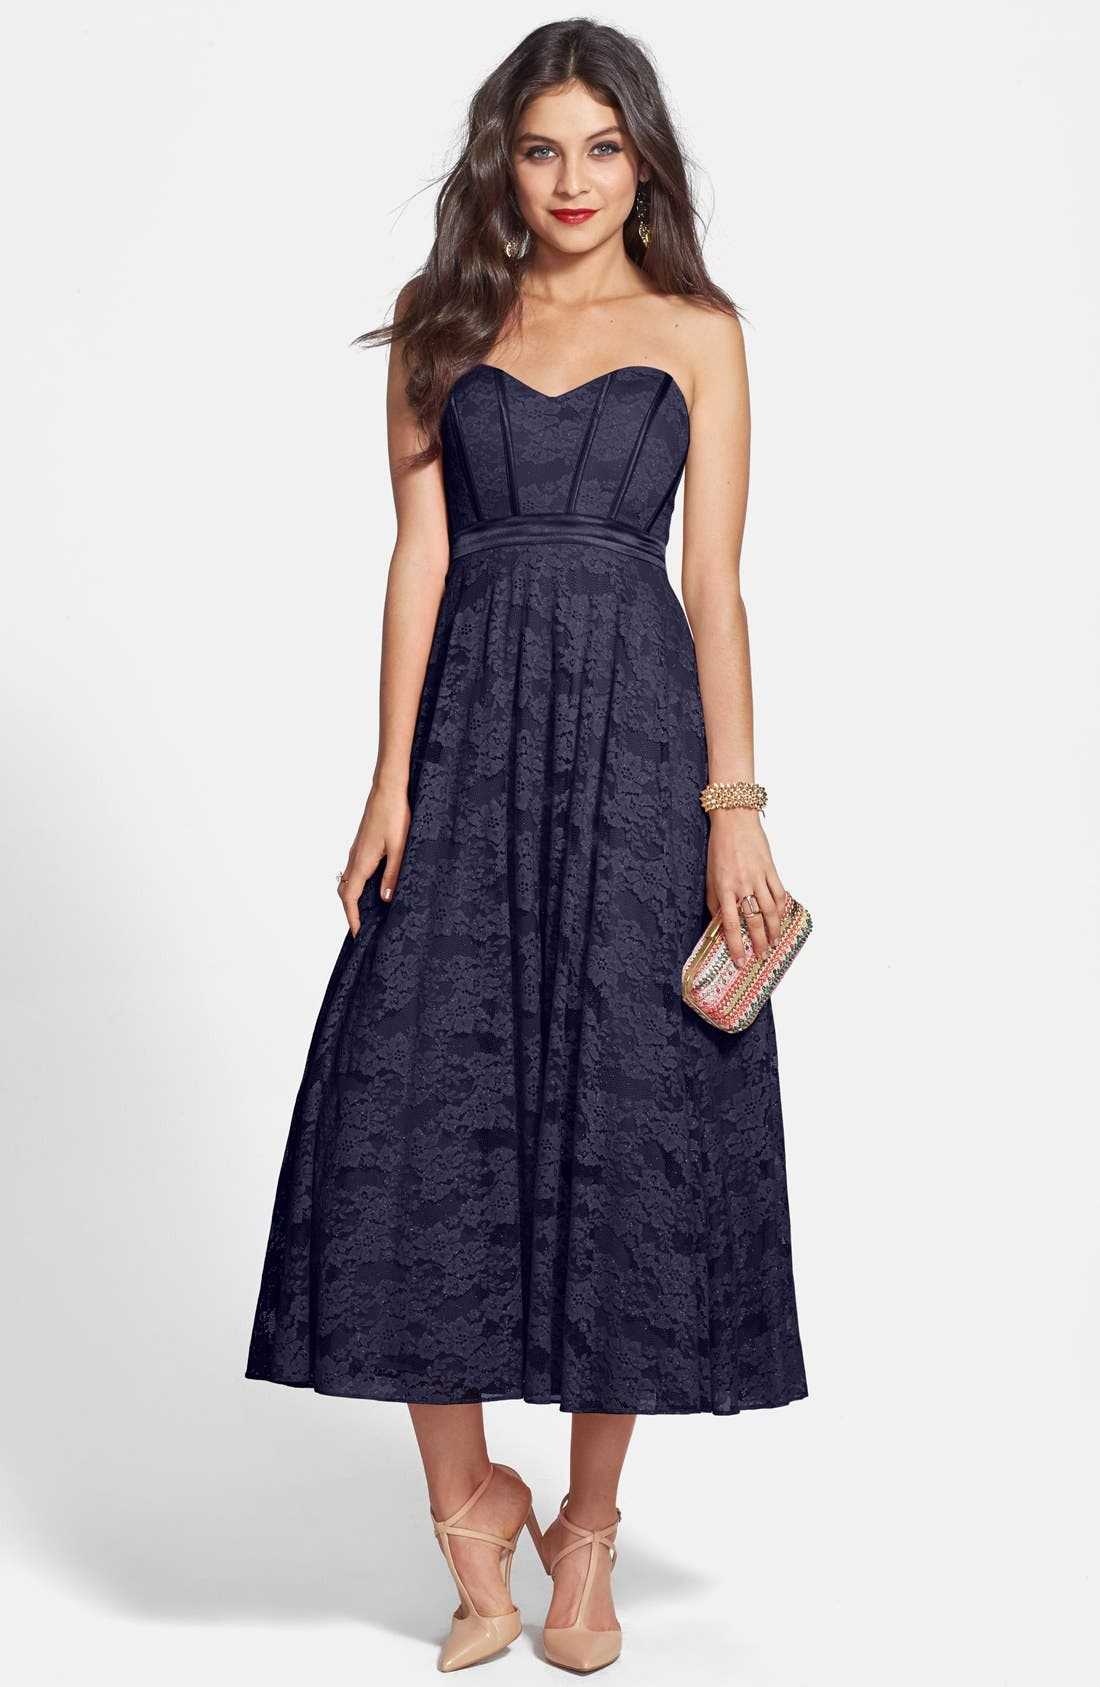 Alternate Image 1 Selected - Hailey by Adrianna Papell Strapless Glitter Lace Party Dress